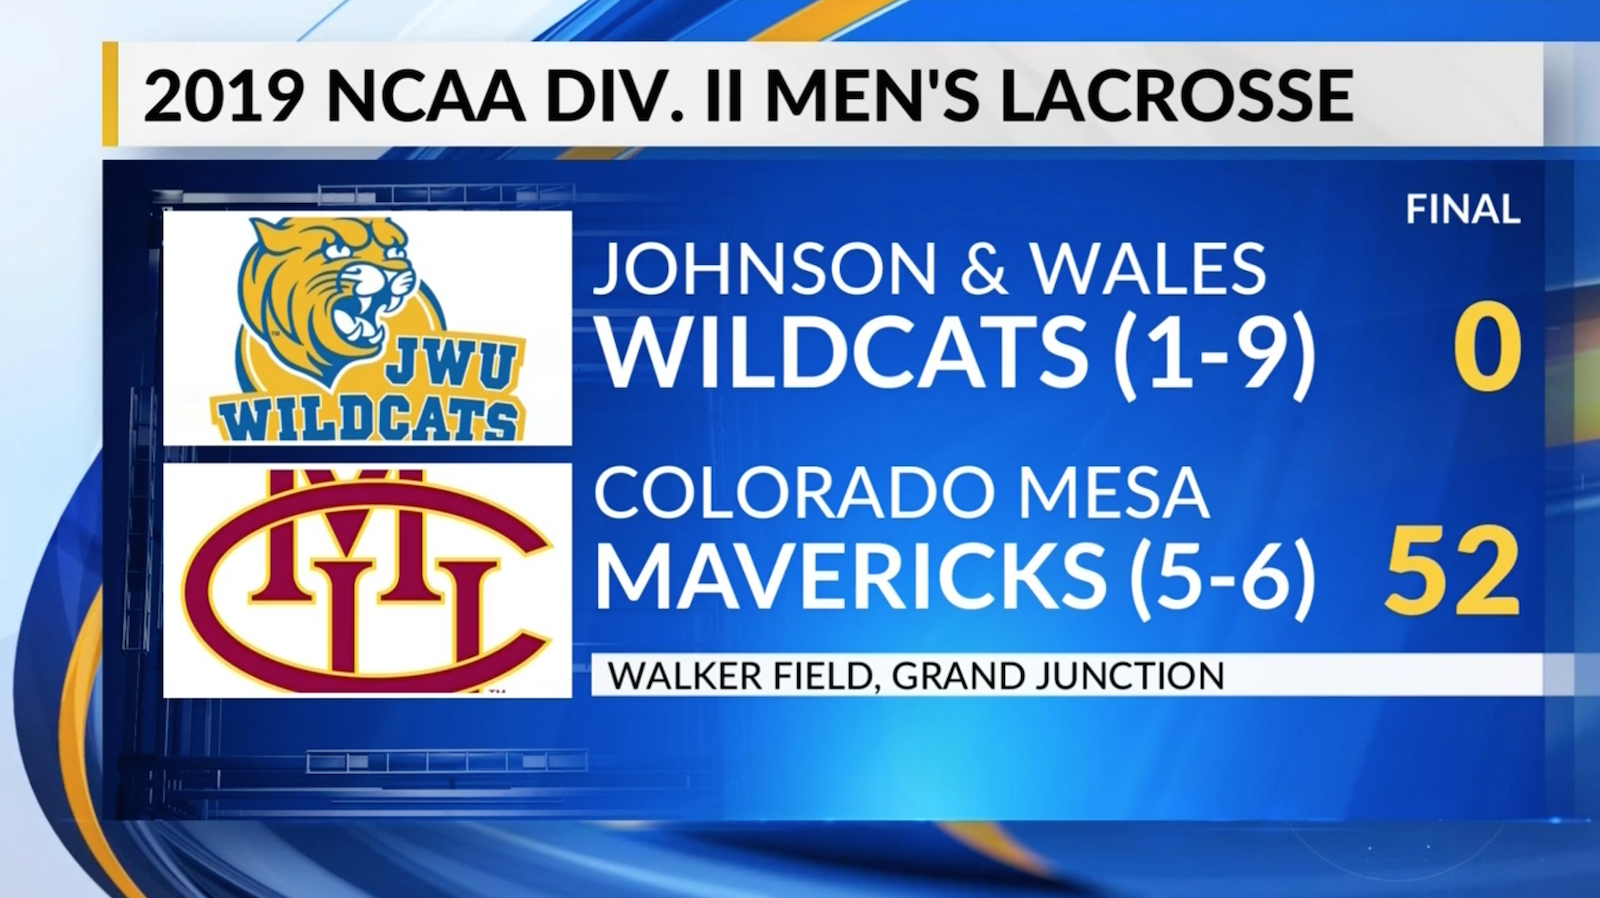 Colorado Mesa sets NCAA lacrosse scoring record (video)